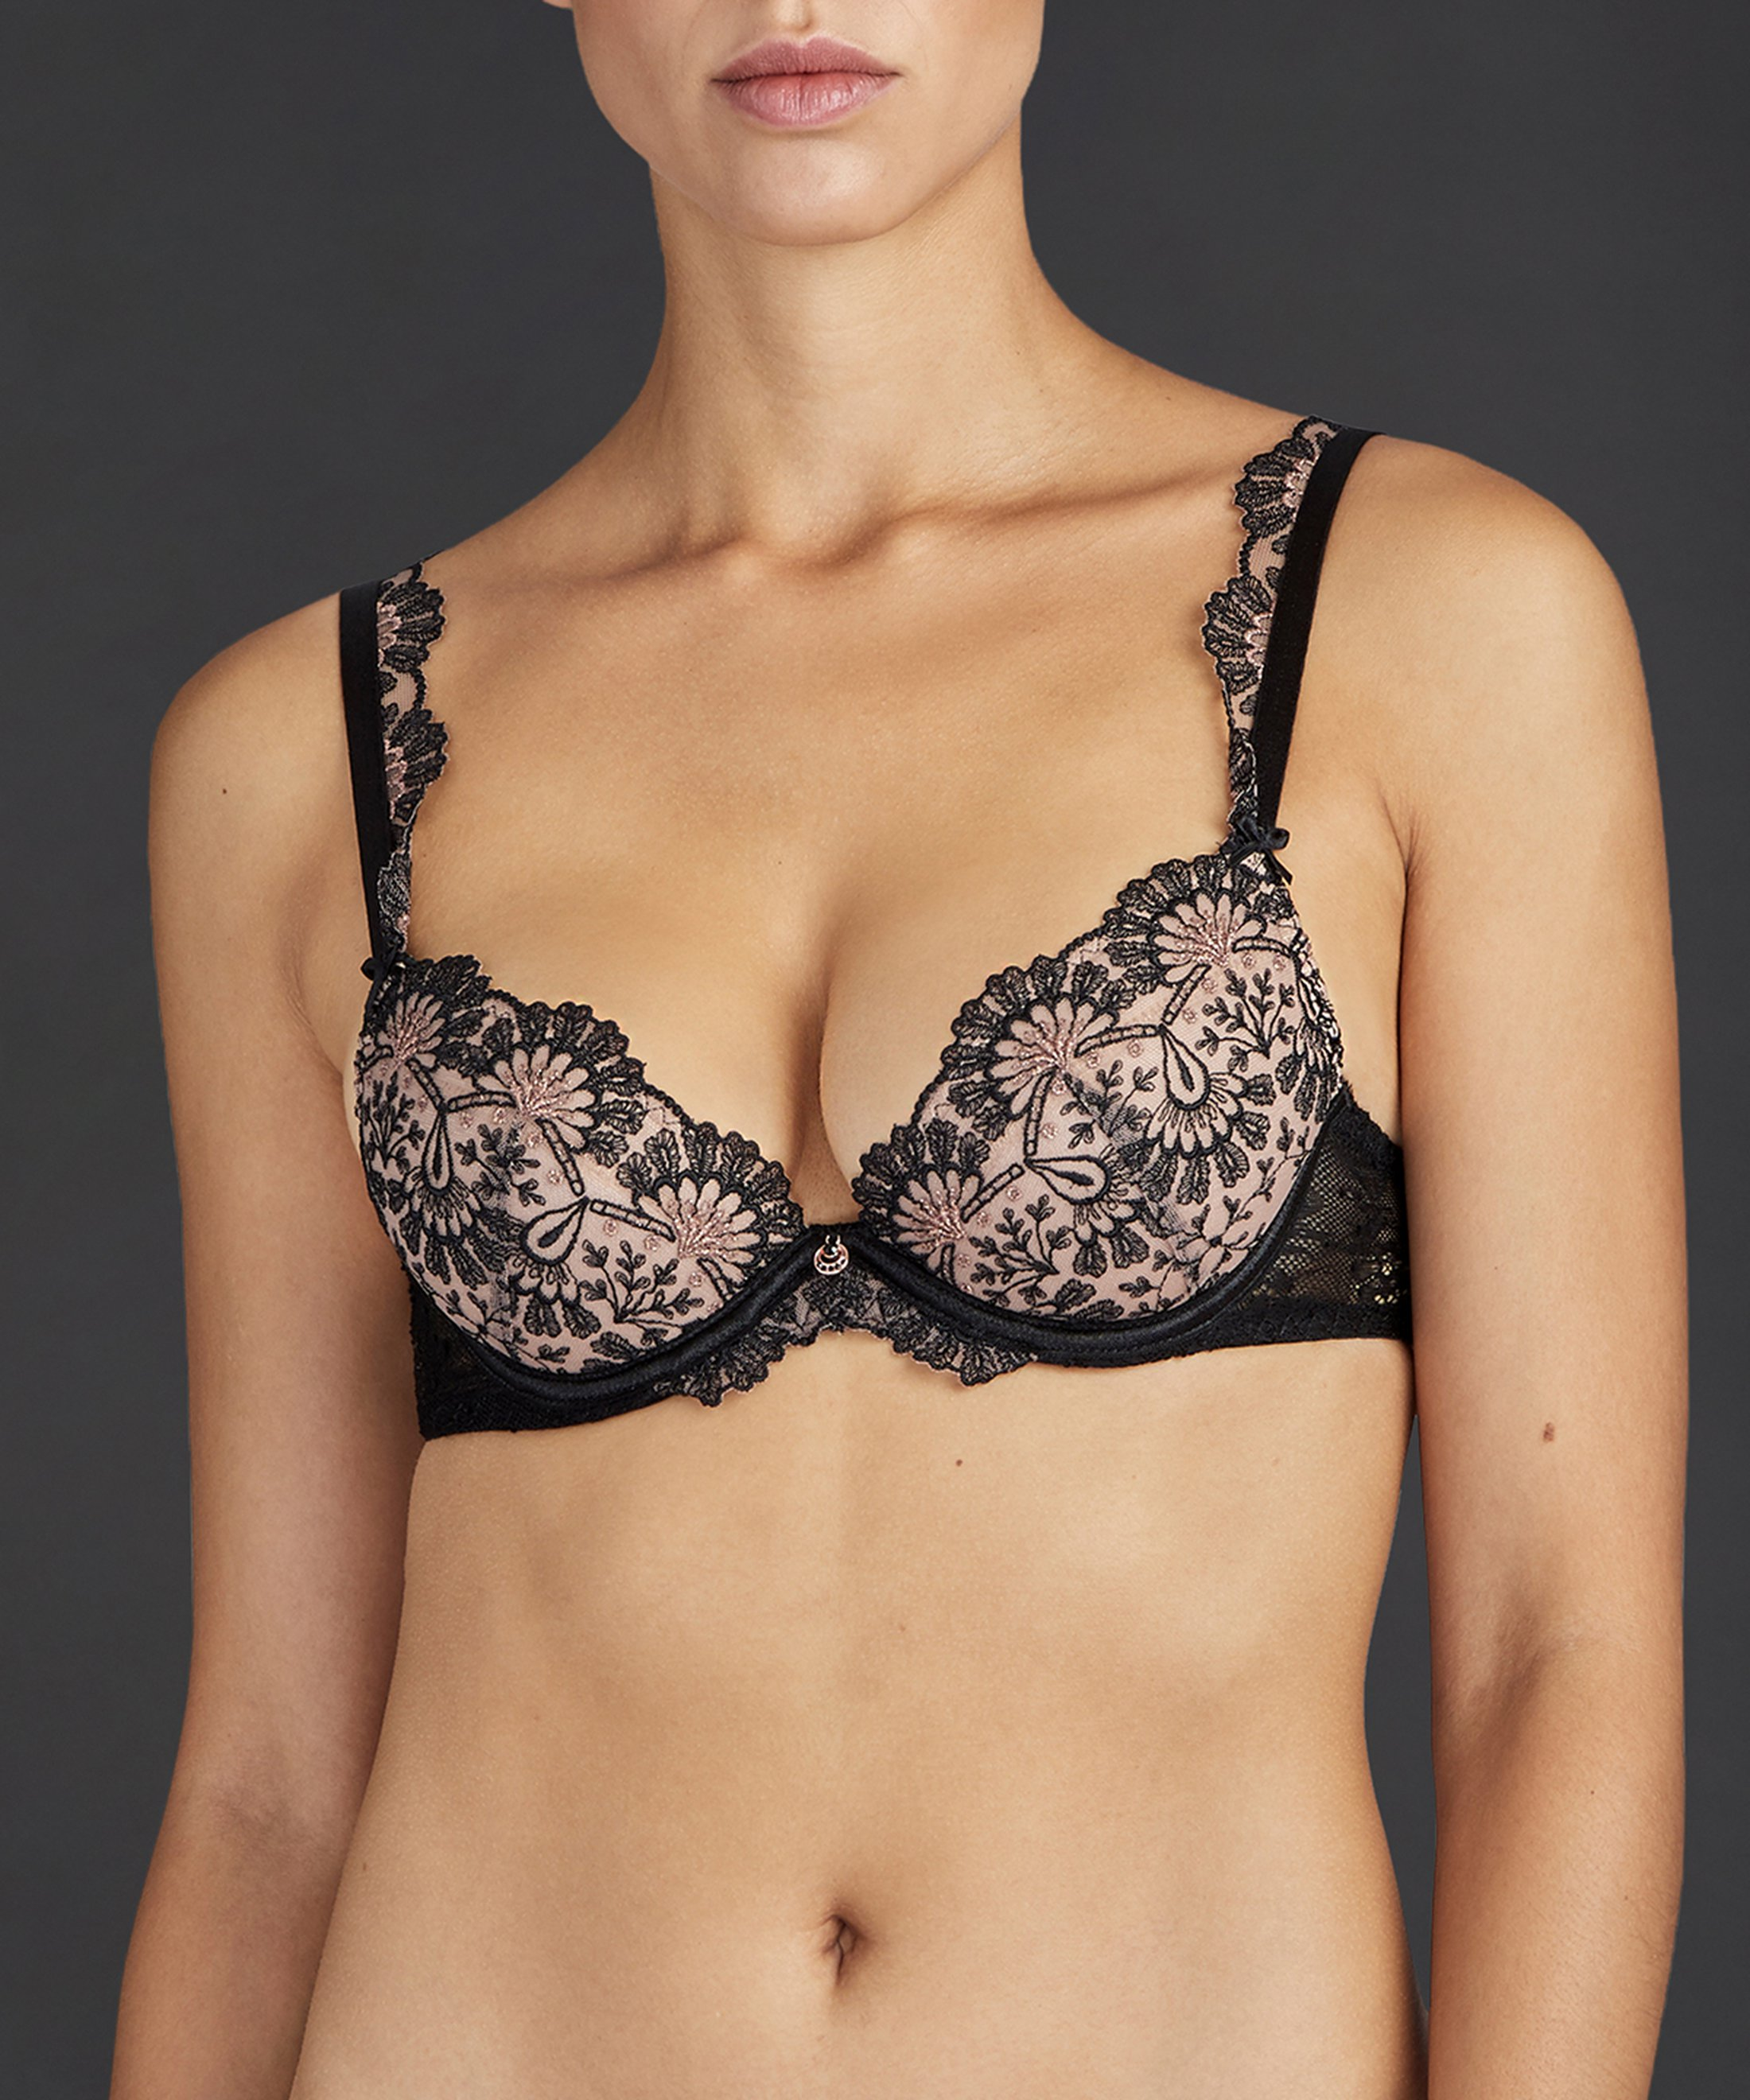 ART OF INK Soutien-gorge push-up Noir Icone | Aubade